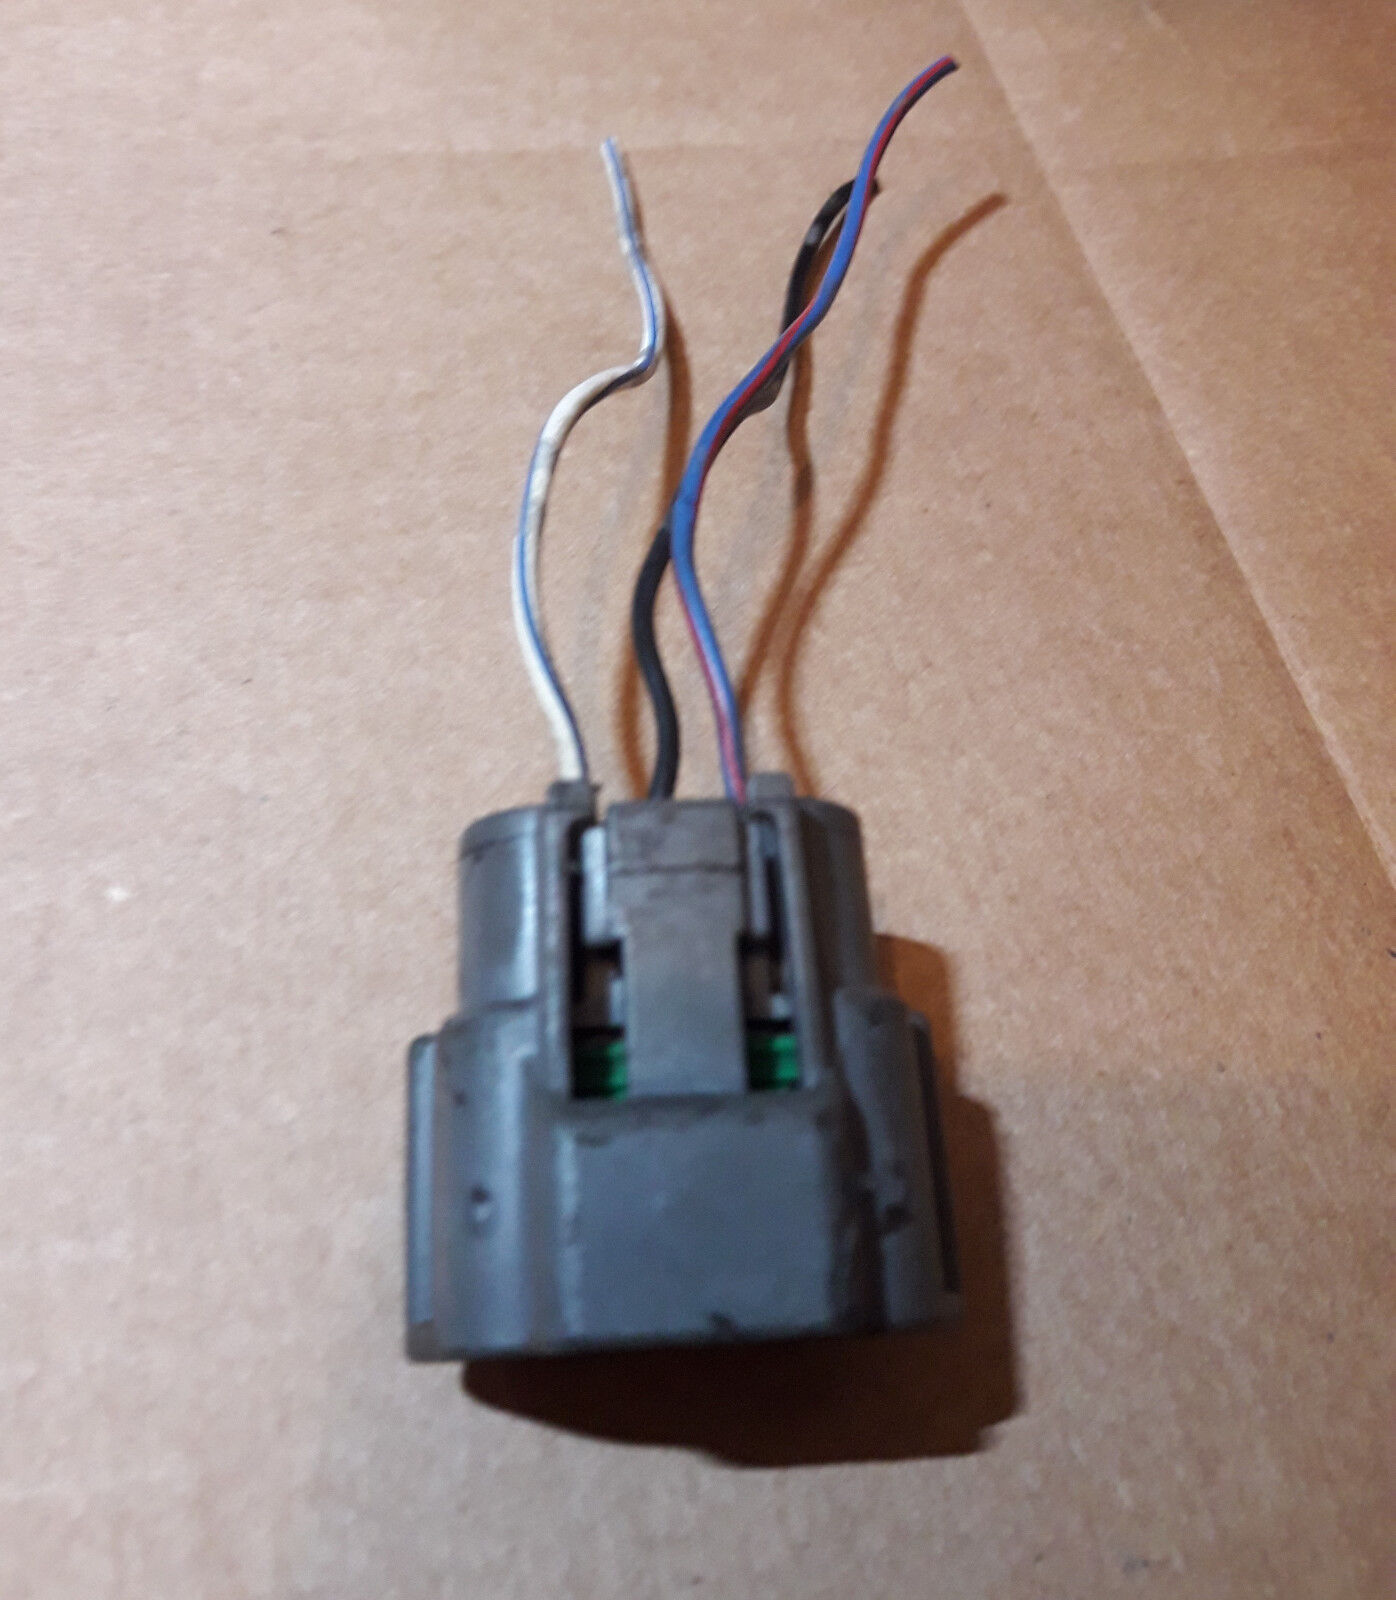 Used Infiniti Ignition Systems For Sale 2001 Qx4 Wiring Harness 2003 2006 G35 Coil Pigtail Wire